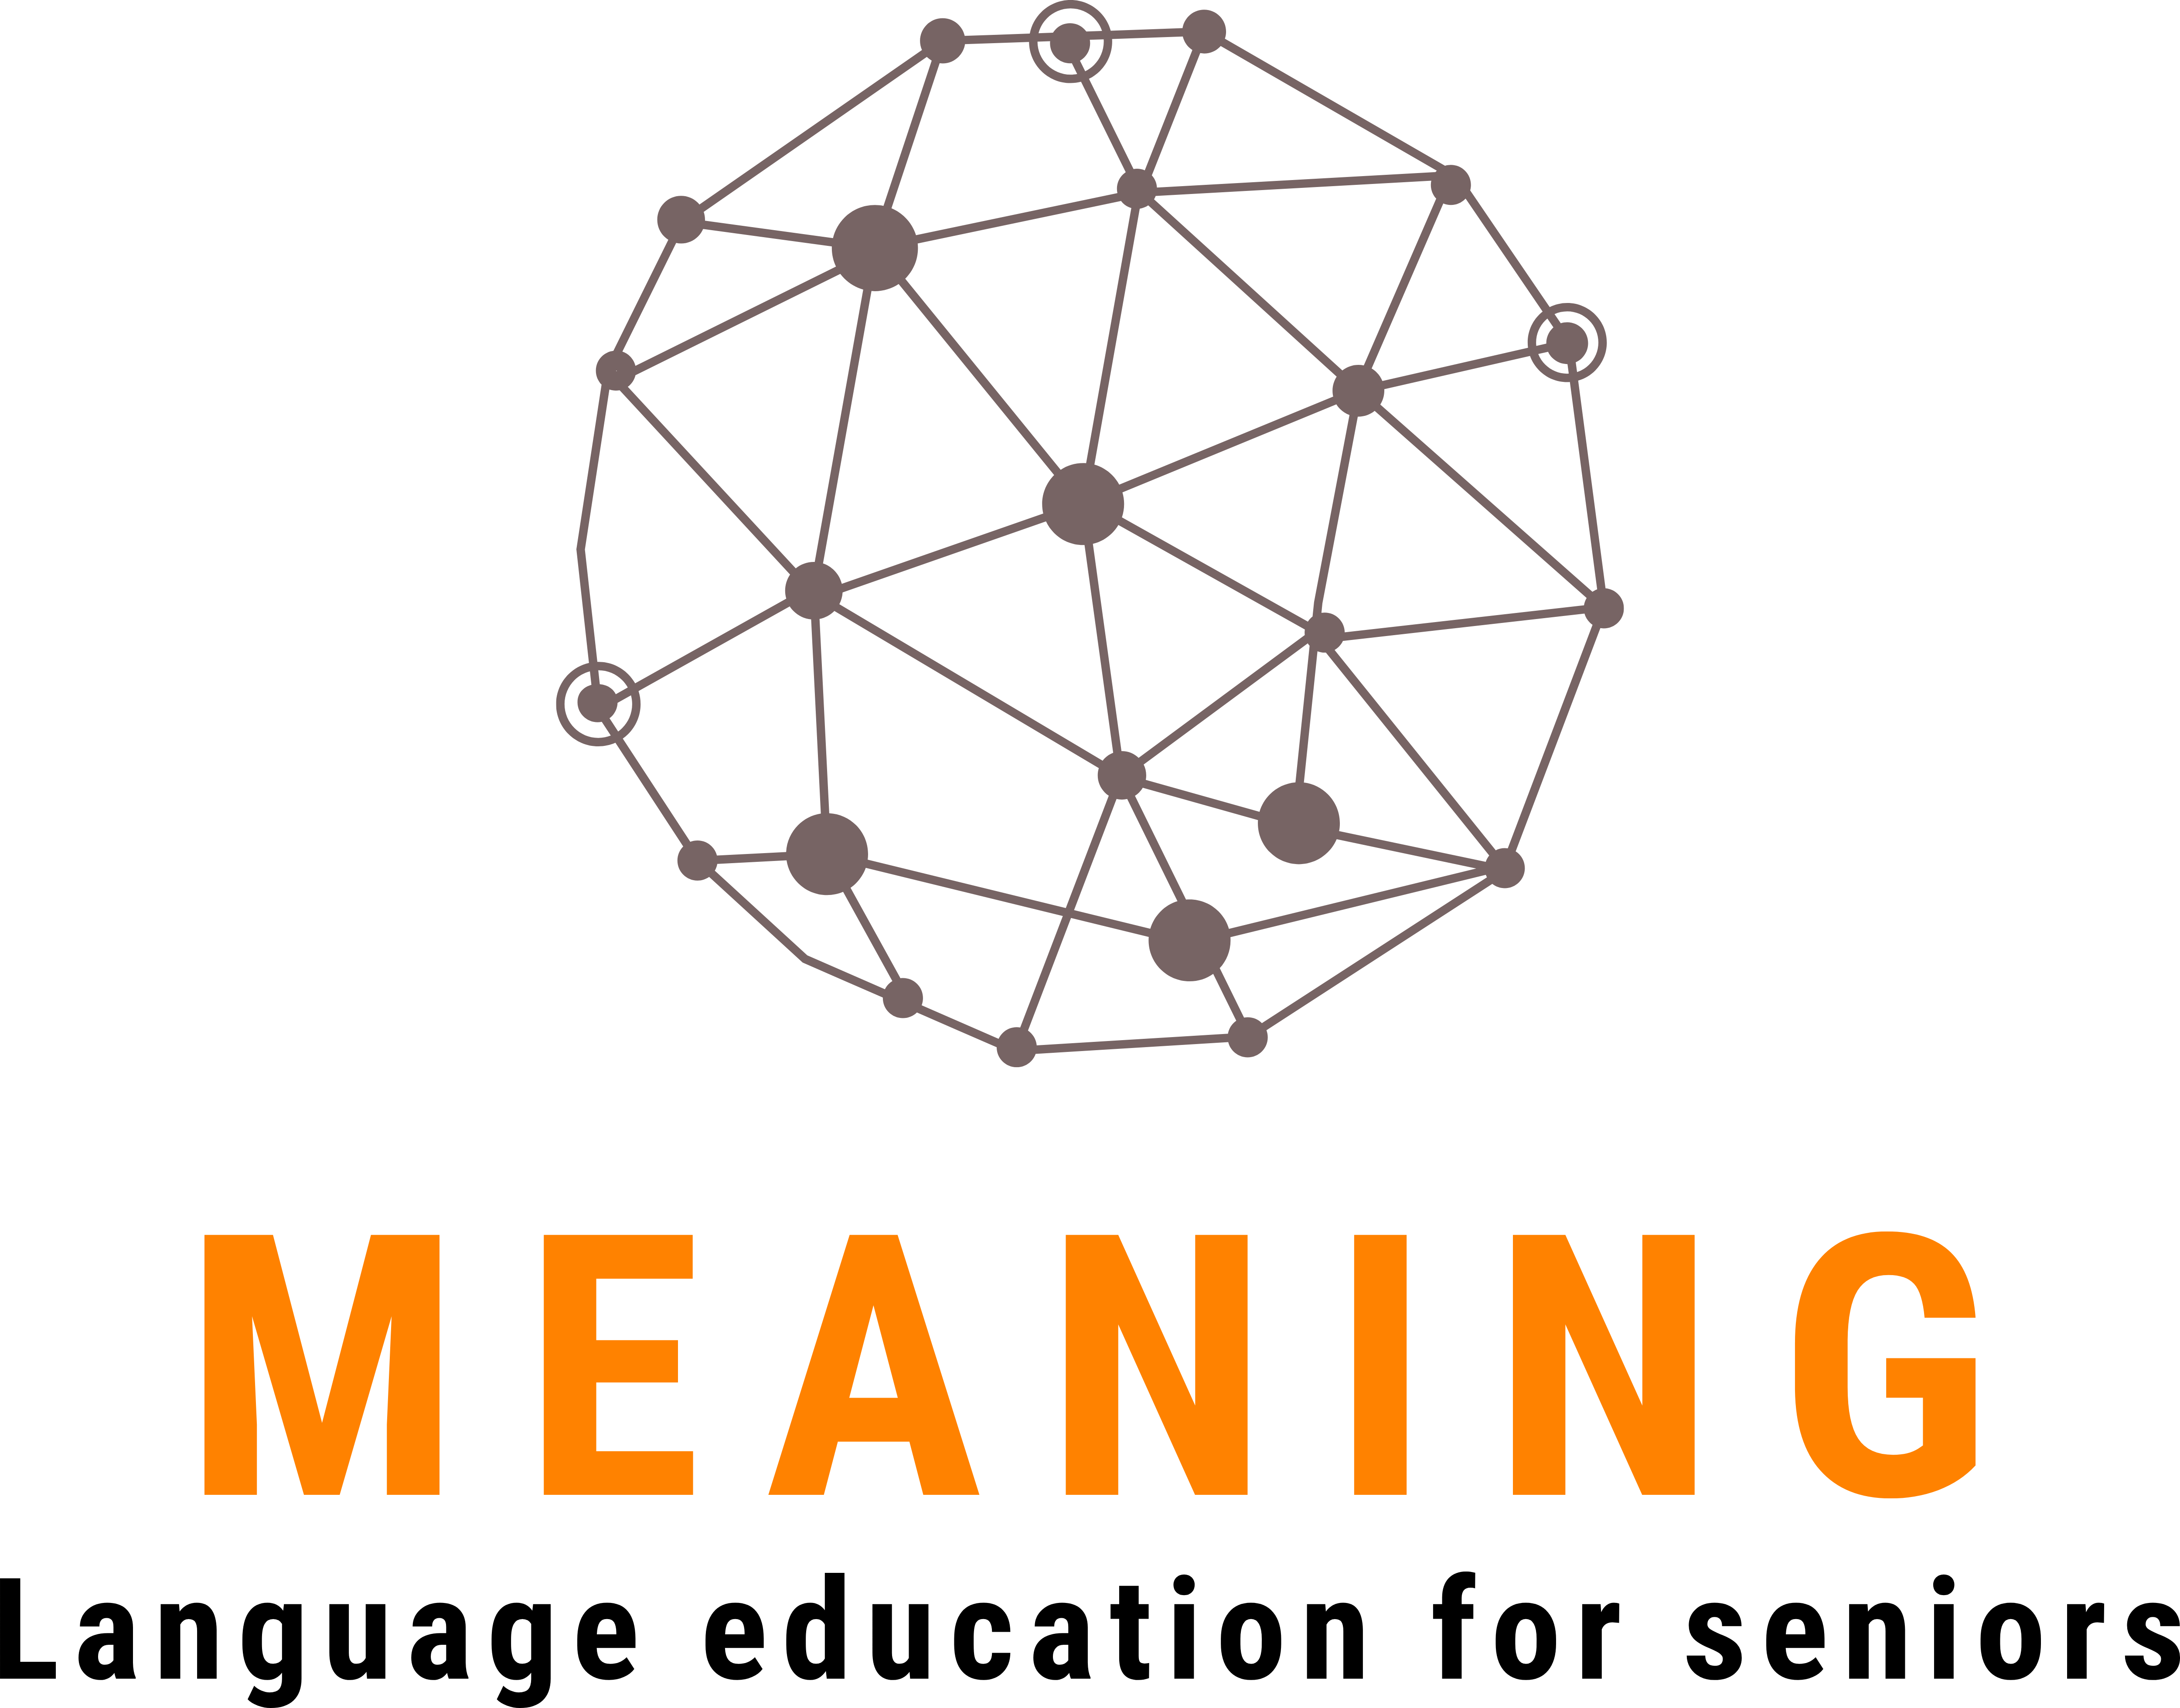 Project Meaning